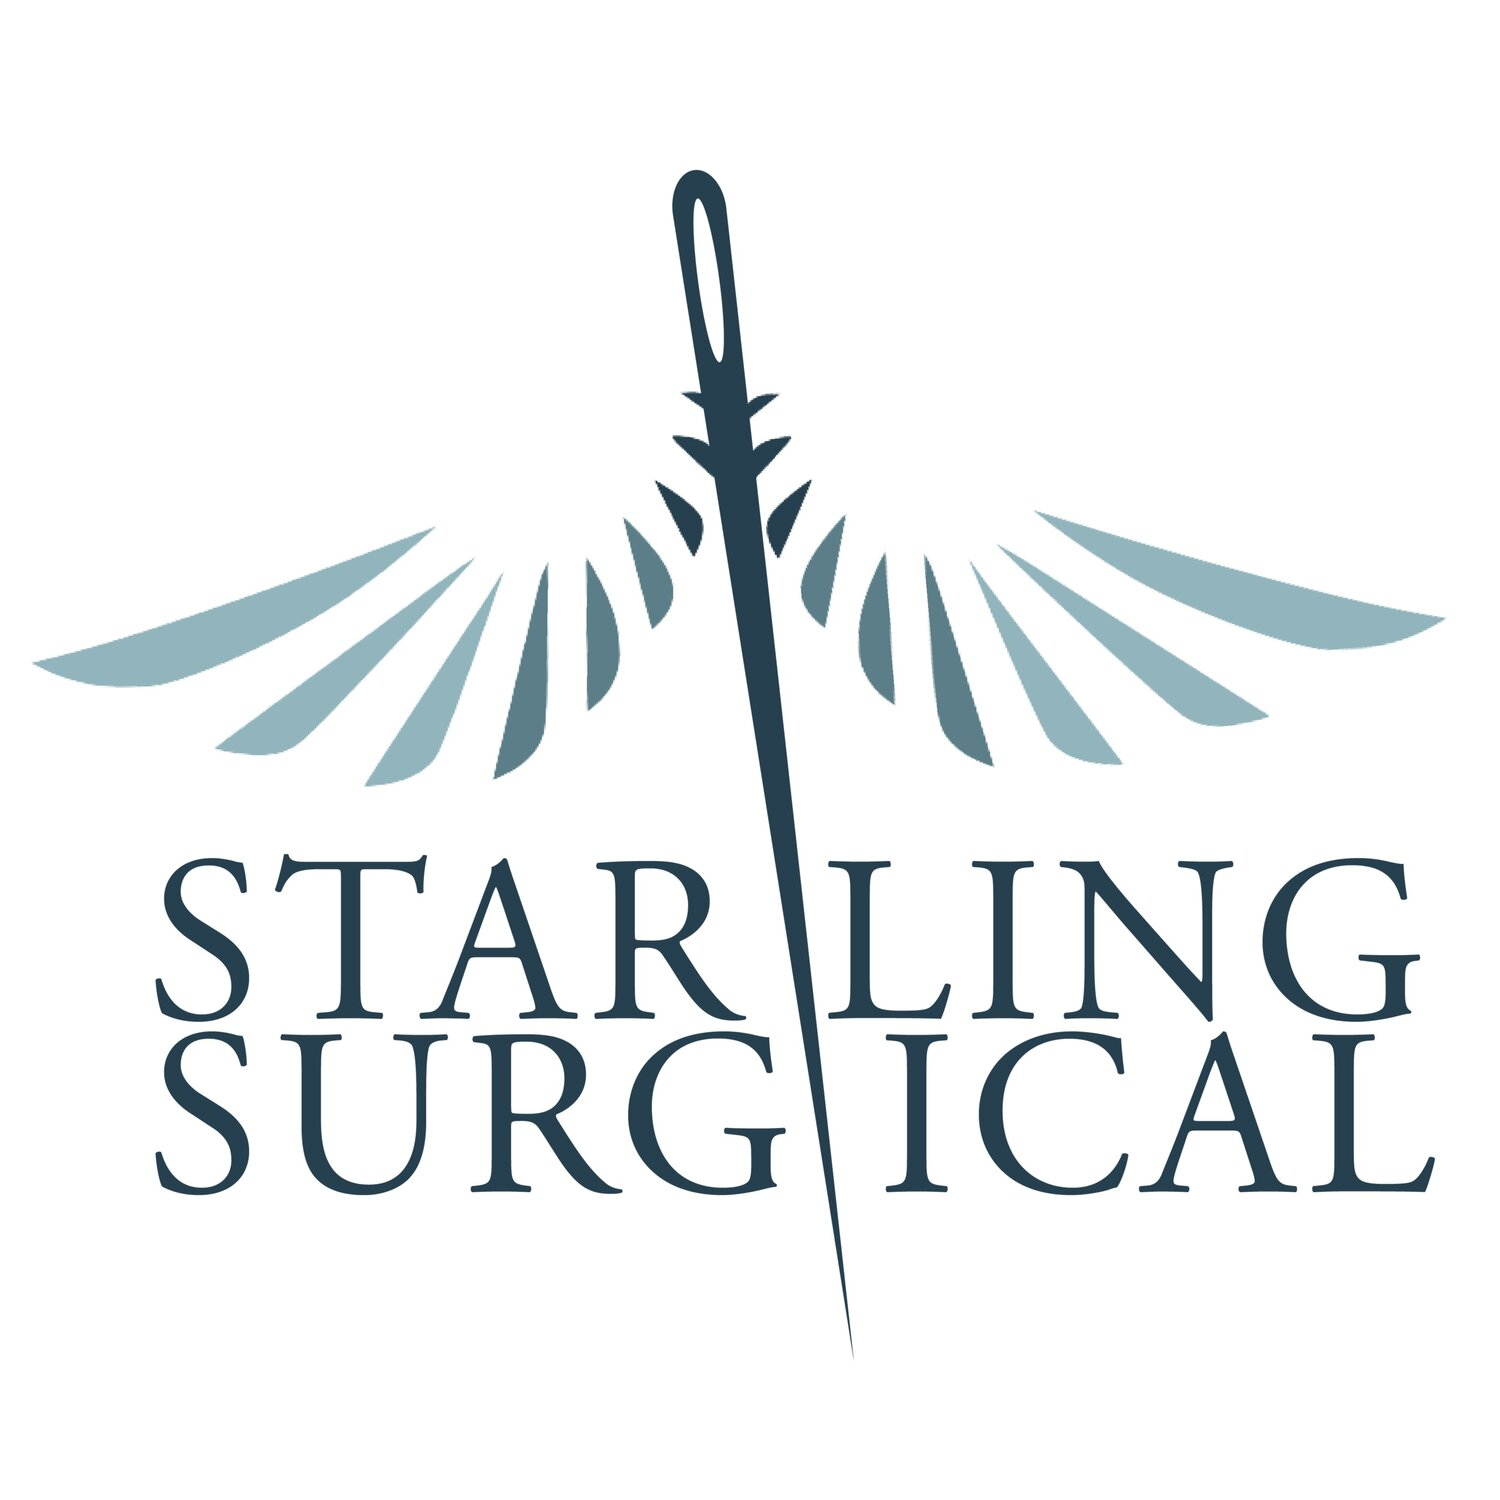 Starling Surgical